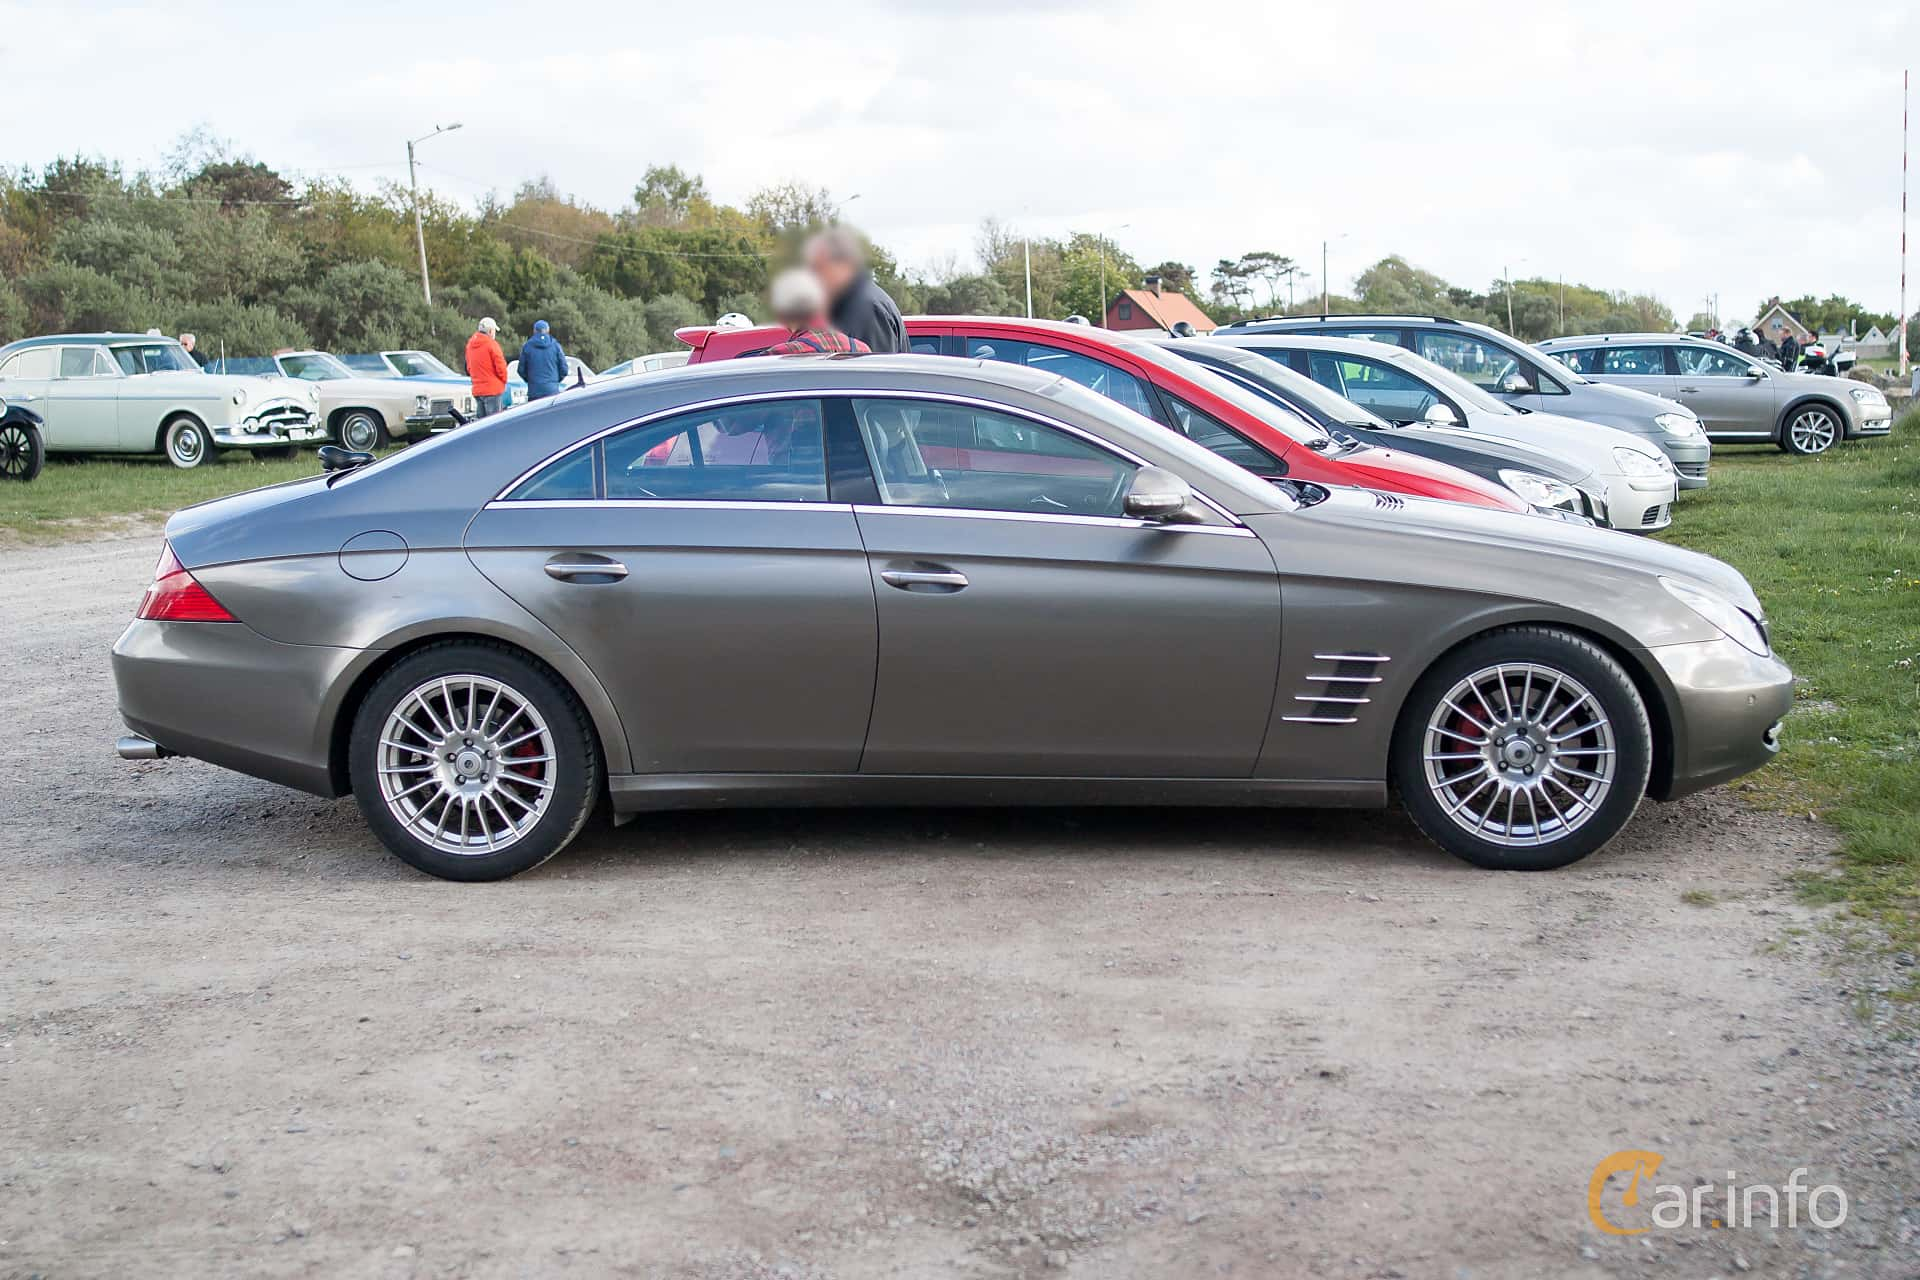 5 Images Of Mercedes Benz Cls 500 7g Tronic 306hp 2006 By Side 306ps